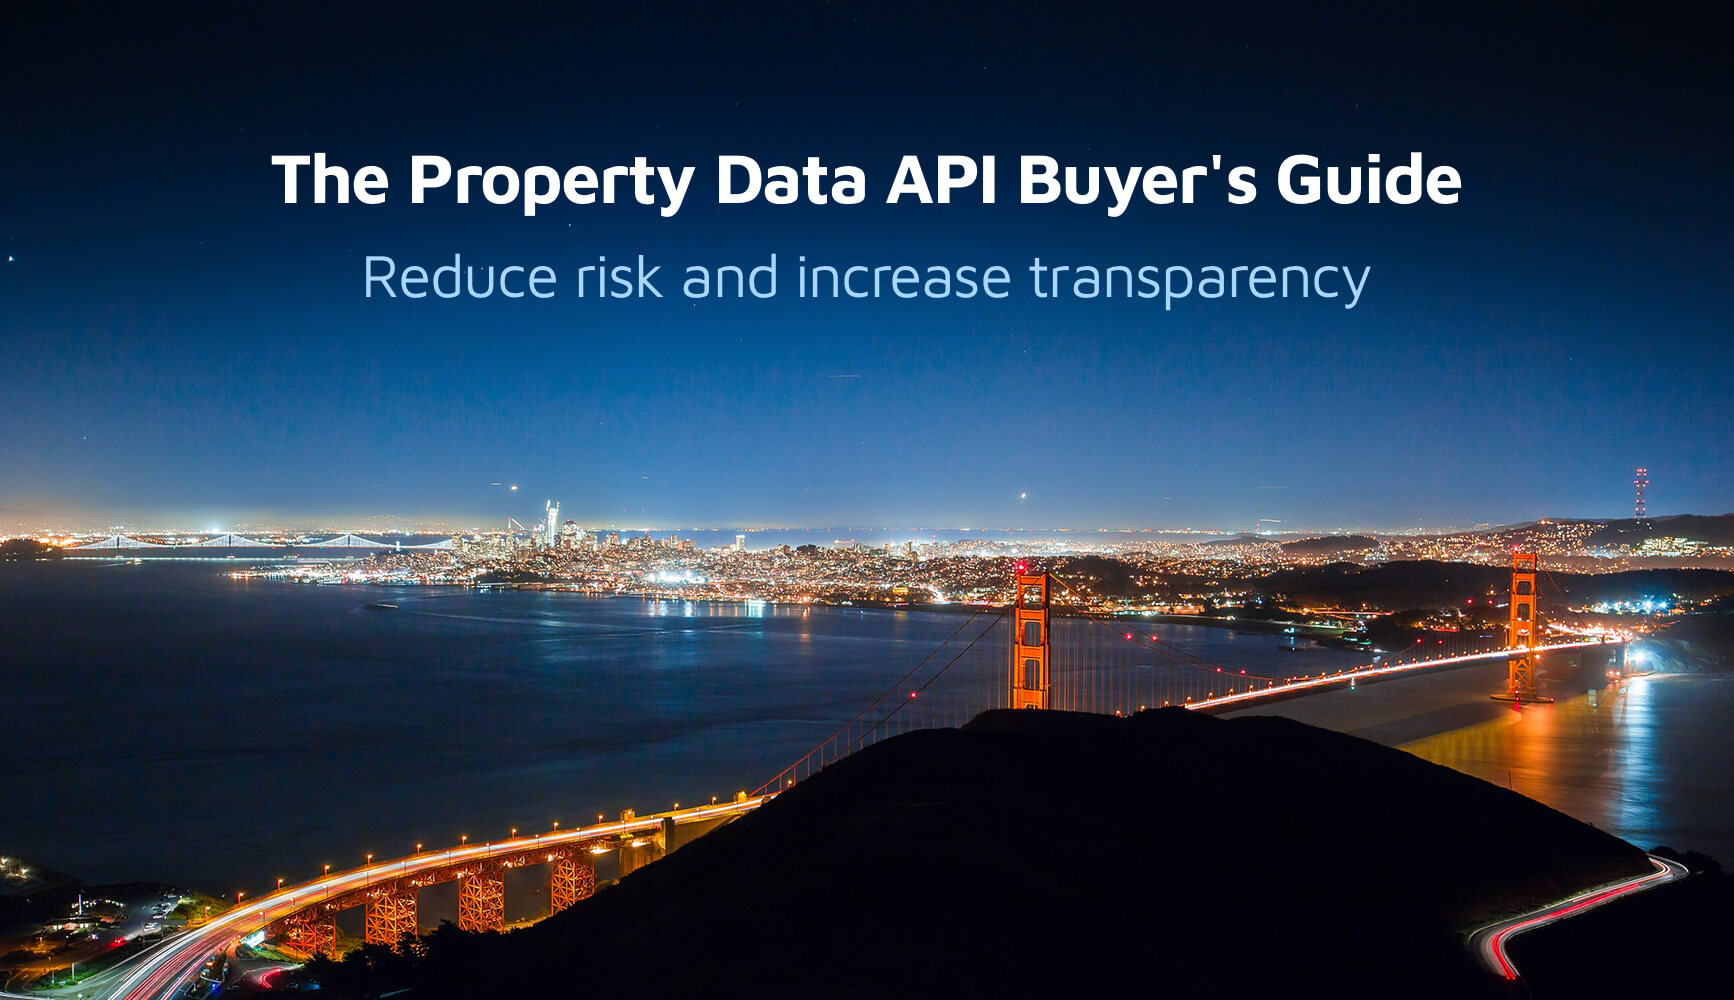 Property Data API Buyer's Guide - Part 2